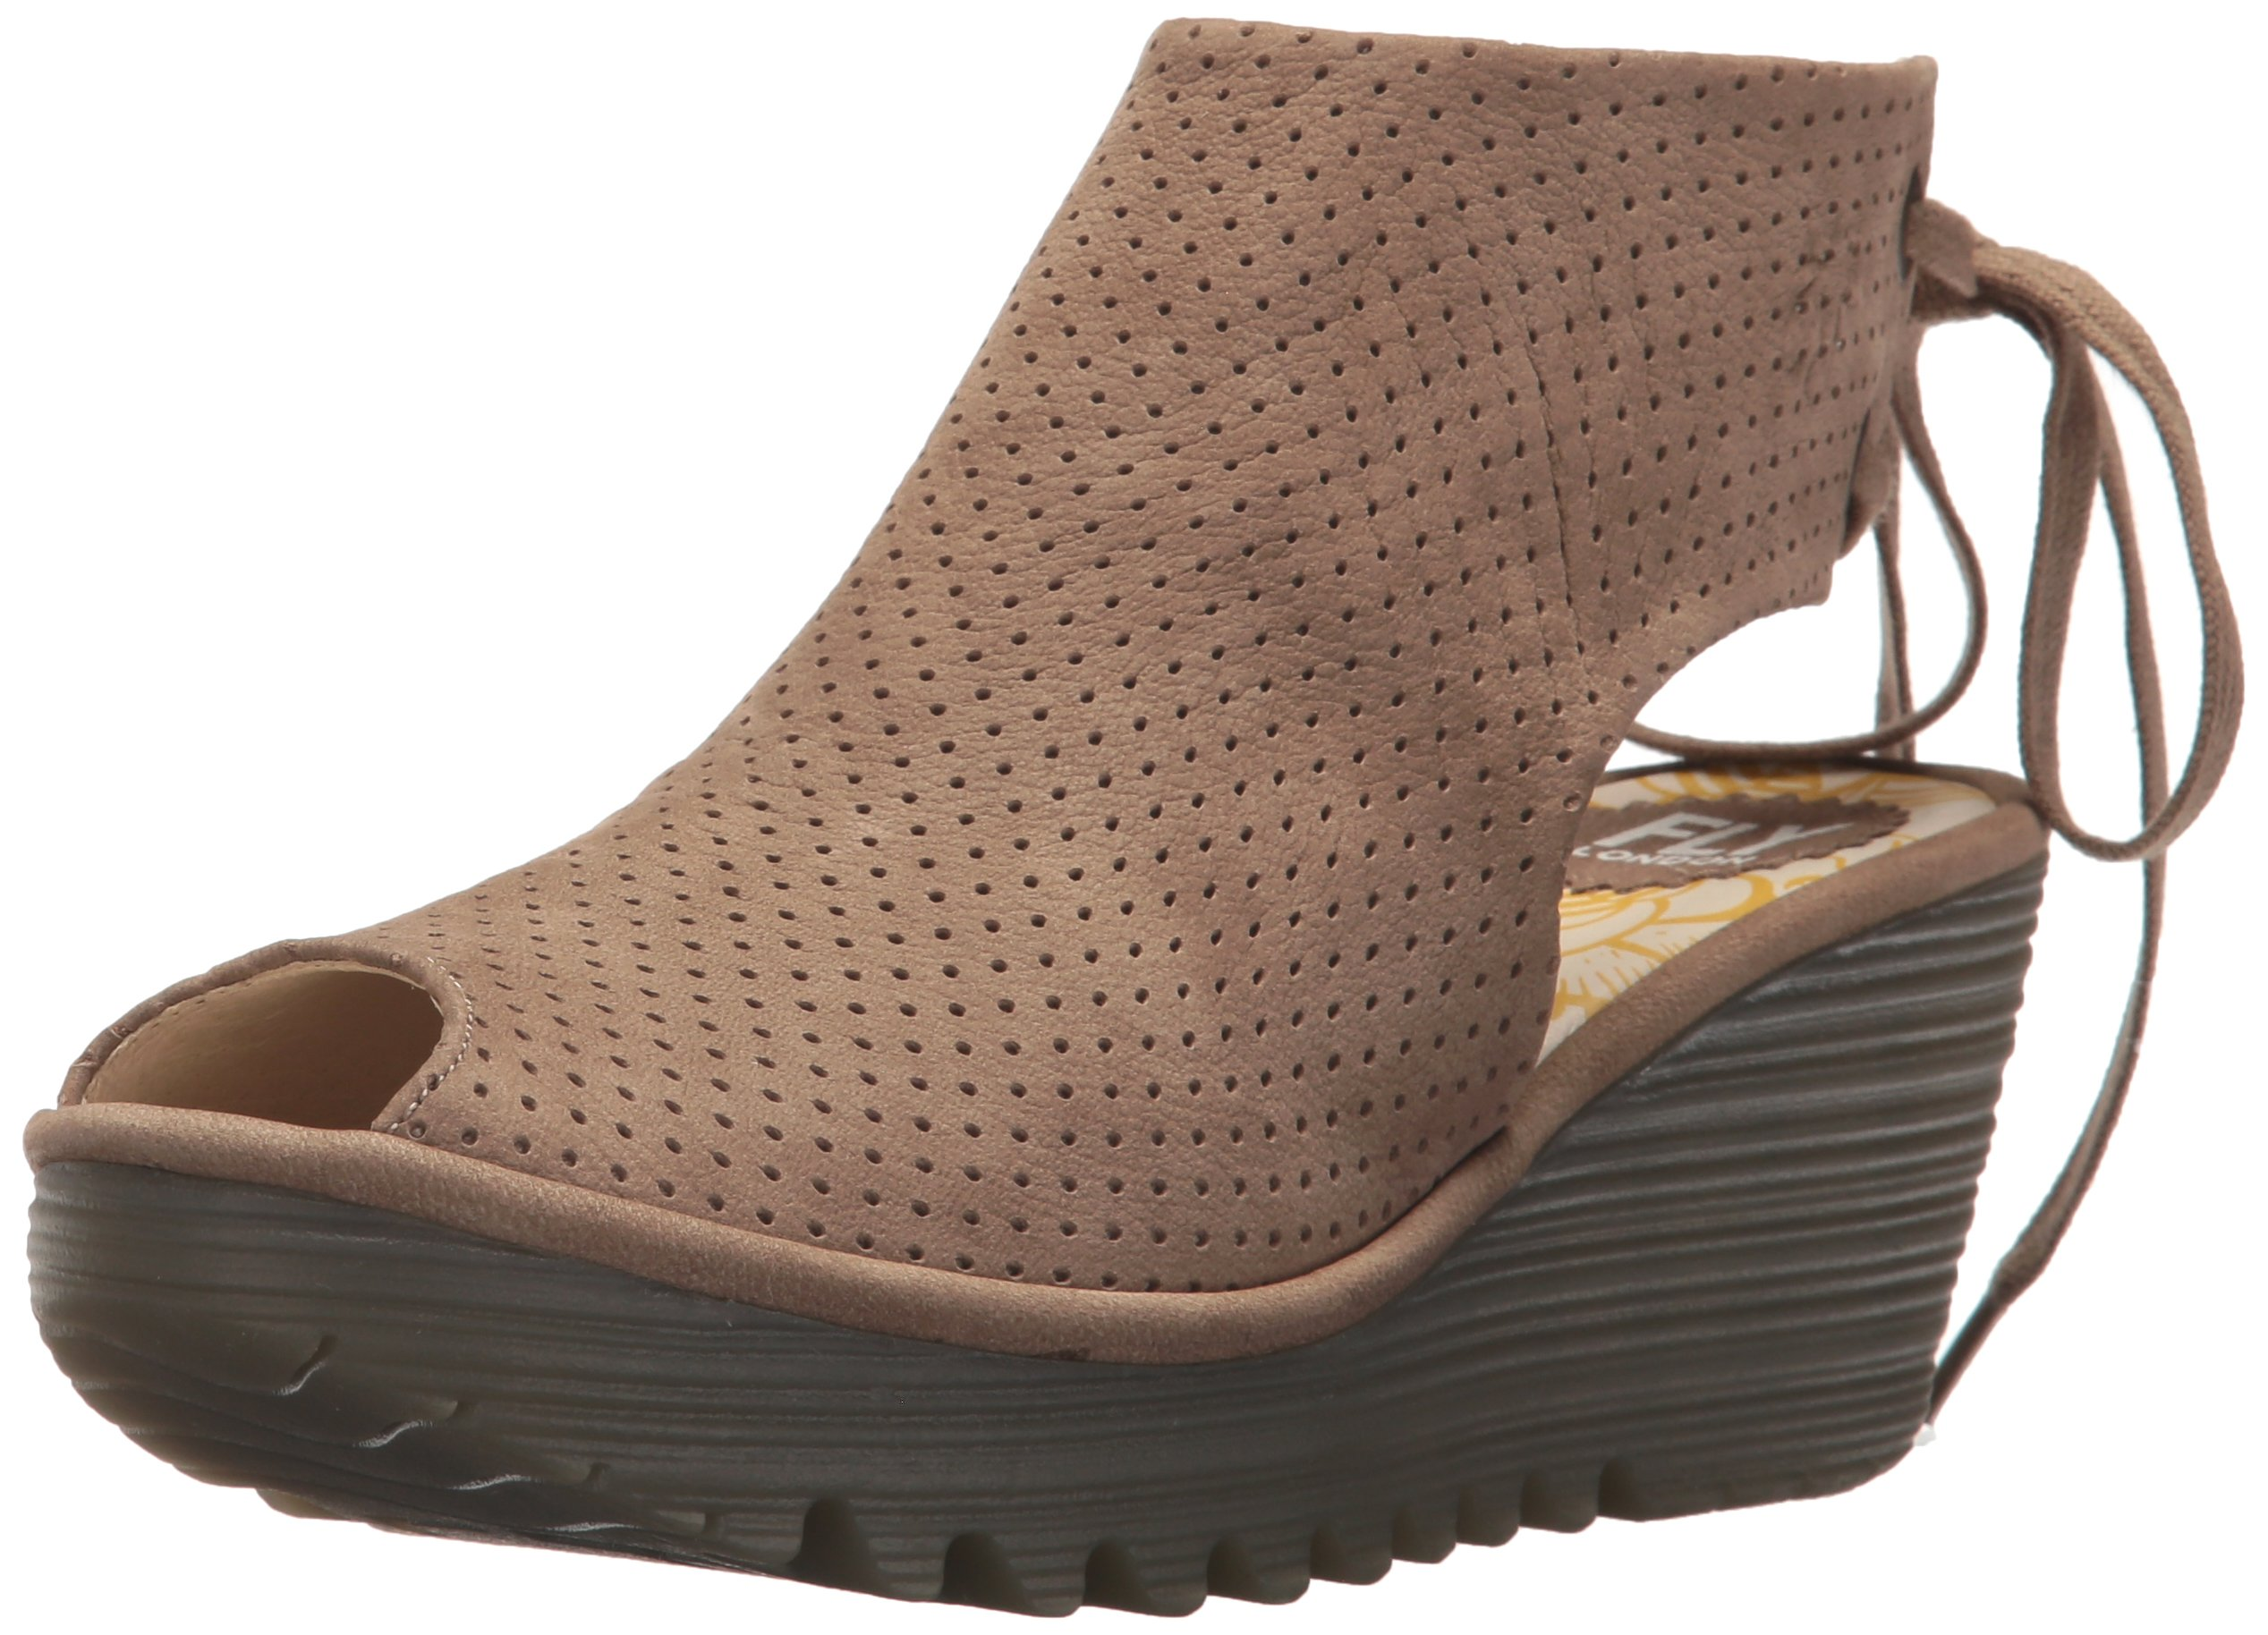 FLY London Women's Ypul799fly Wedge Sandal, Taupe Cupido, 36 M EU (5.5-6 US)